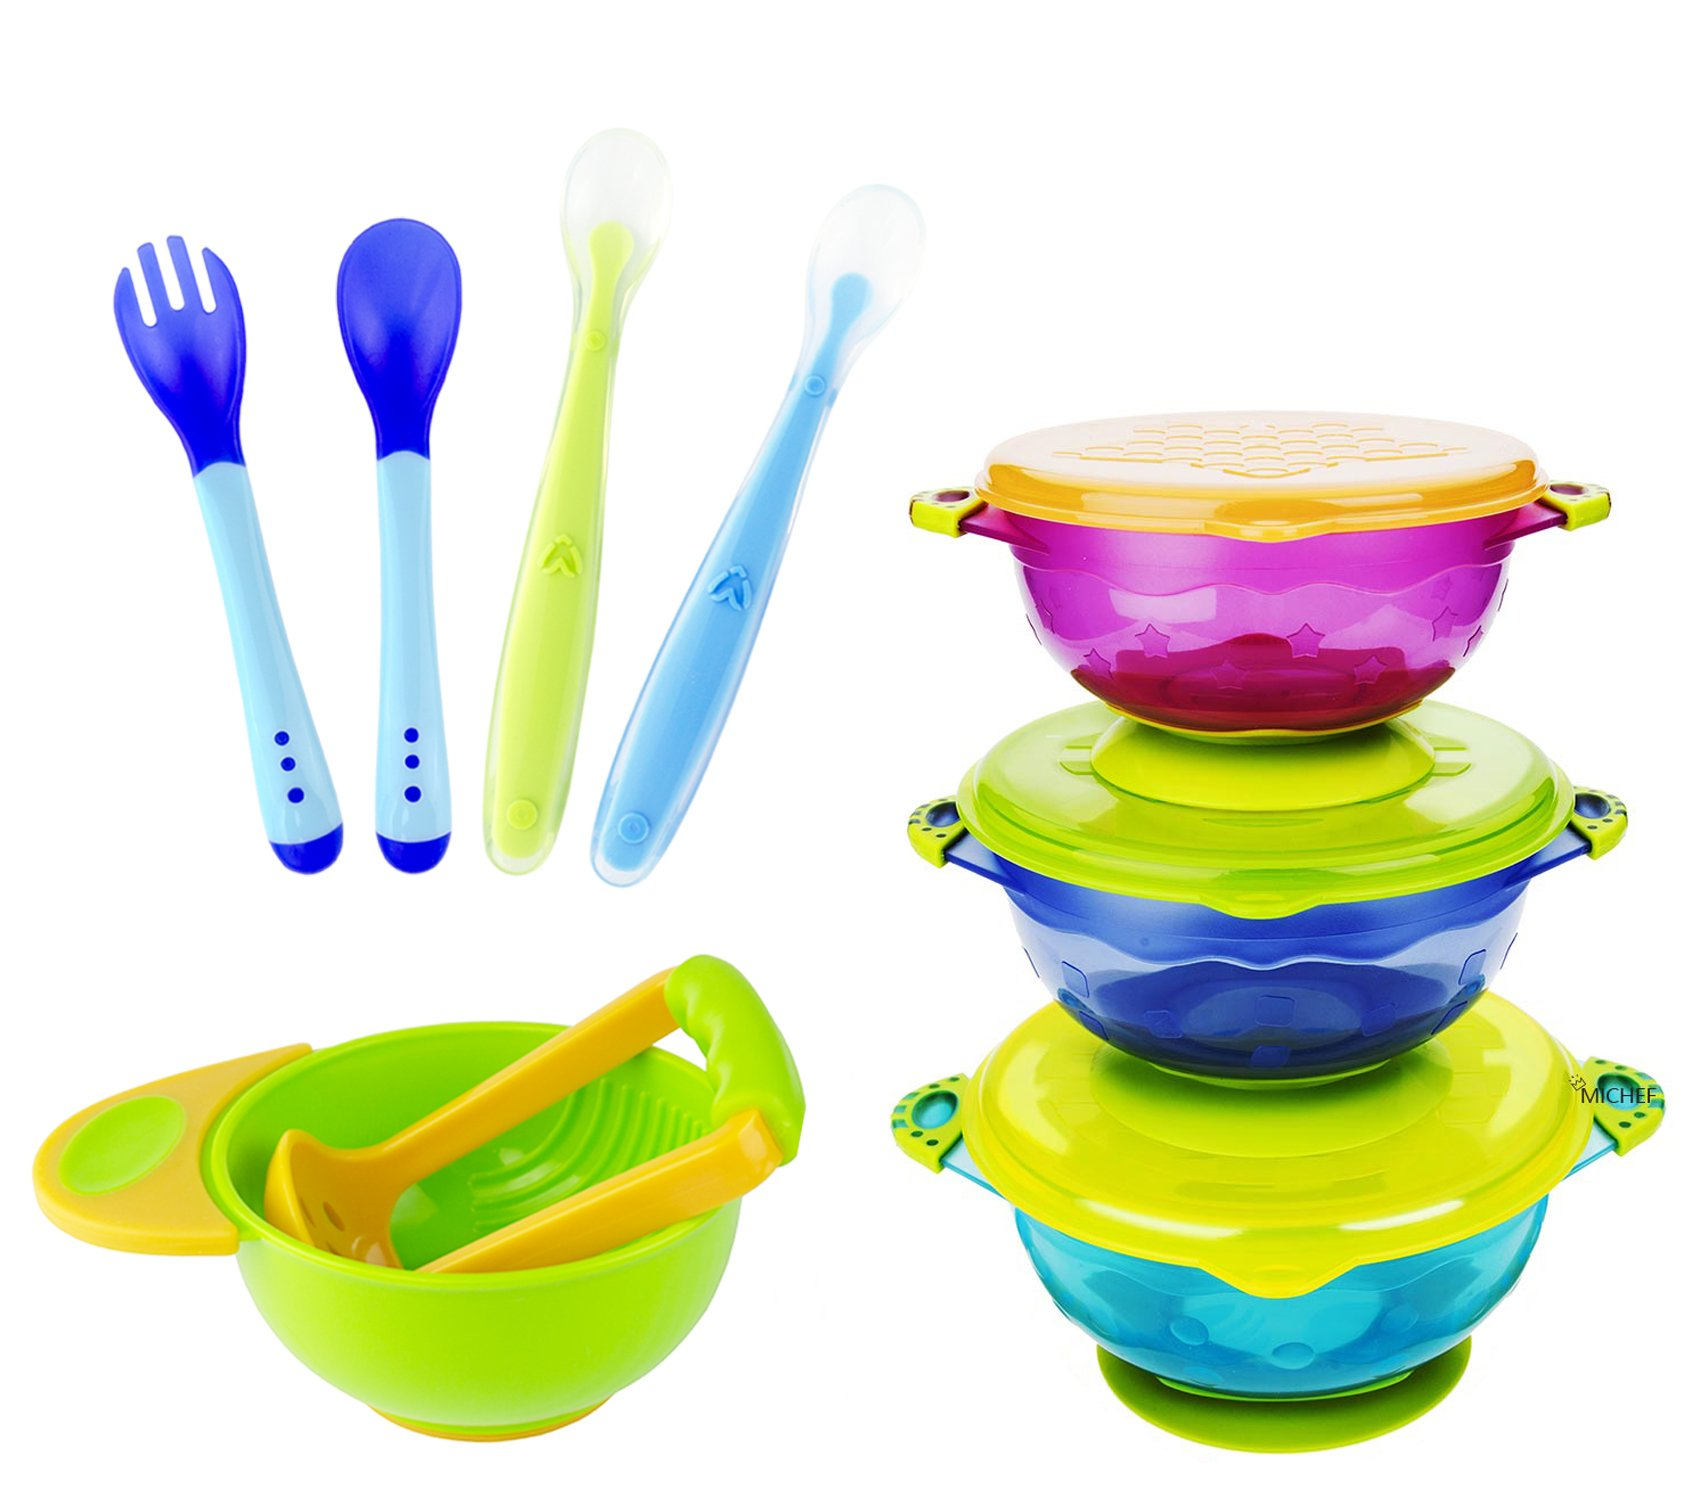 MICHEF Baby Bowls, Baby Feeding Bowls Set with Mash and Serve Bowl, 2 Hot Safe Spoon and Fork, 2 Soft-Tip Silicone Infant Spoons - Perfect Baby Shower Gift Set of 3 Spill Proof Suction Bowls with Lids by MICHEF